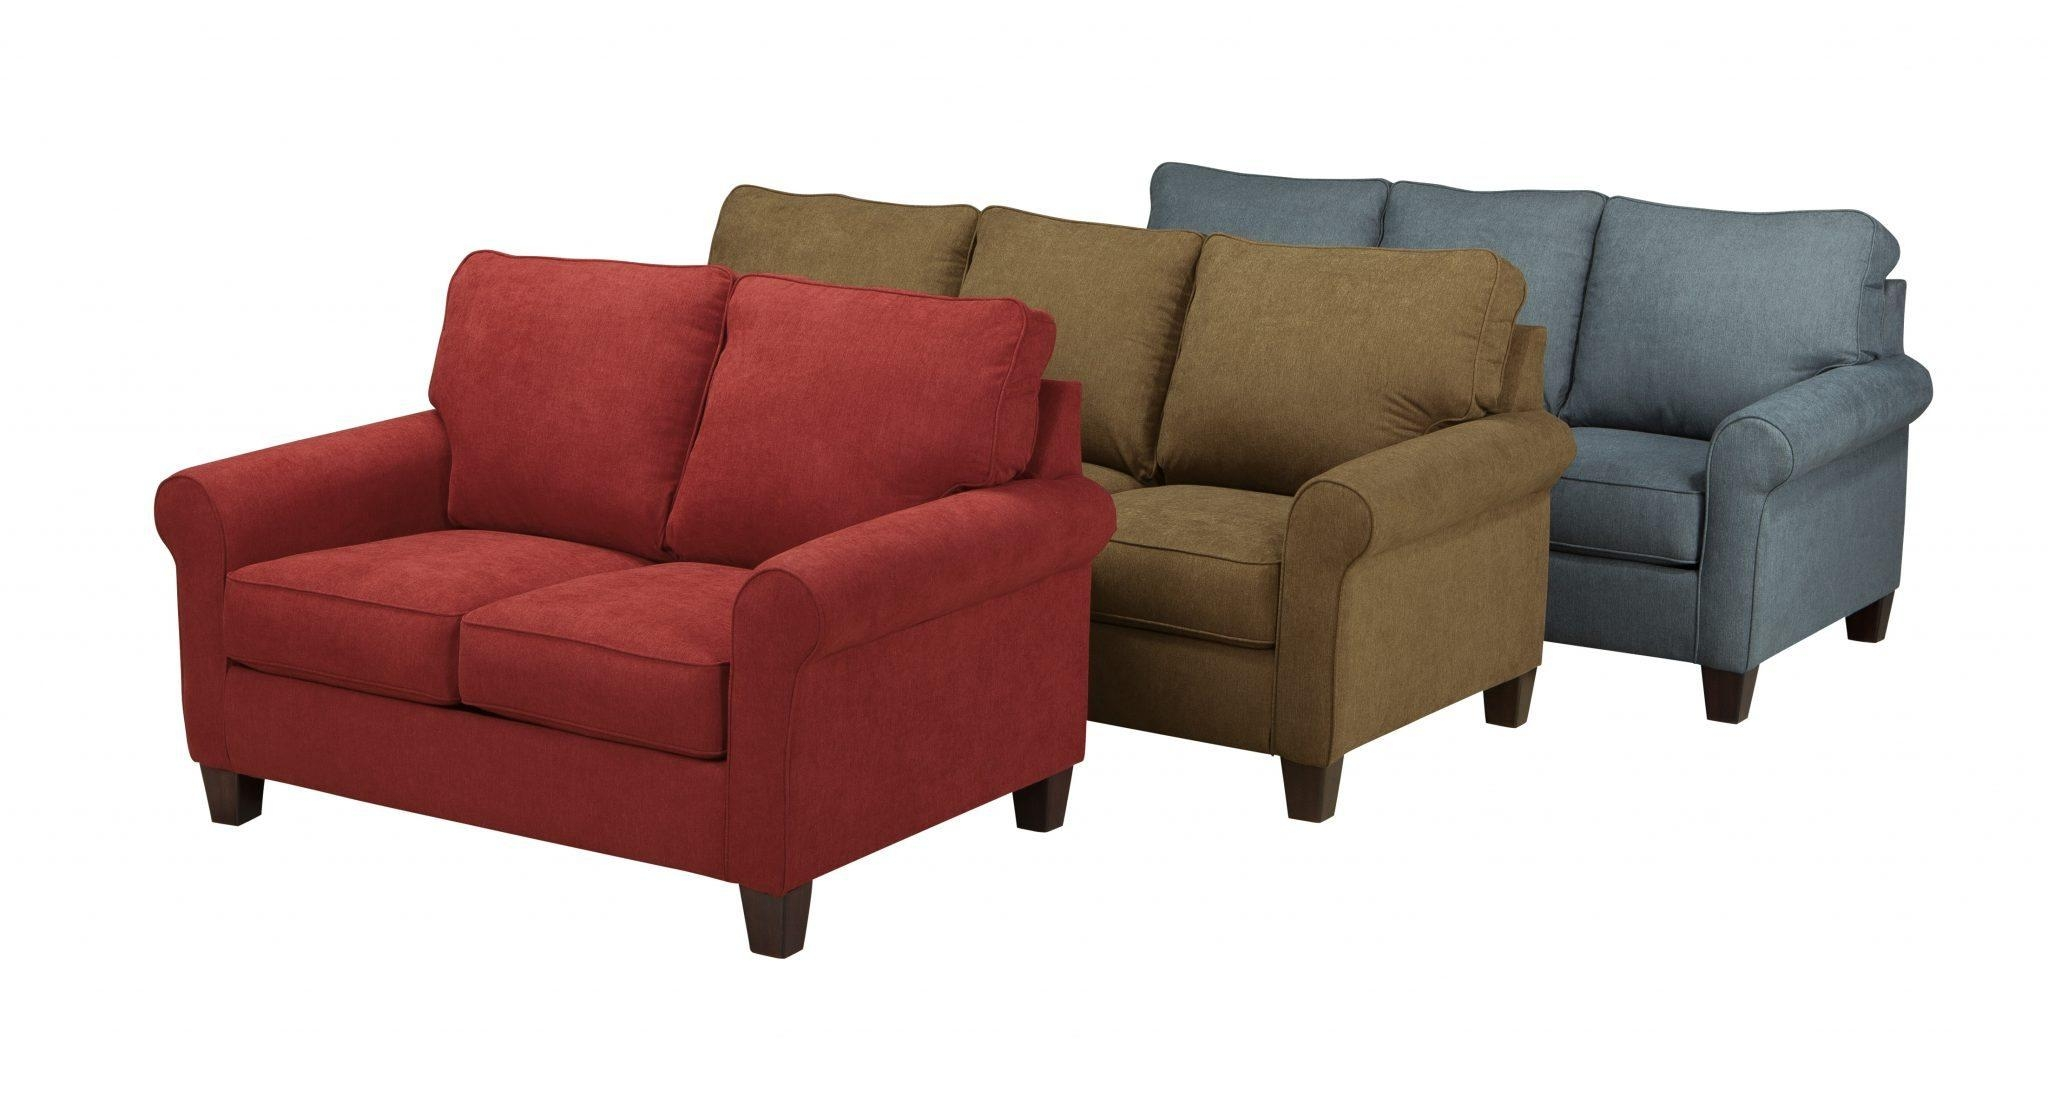 Sofas Center : Fascinating Ashley Sleeper Sofa Image Ideas Intended For Chenille Sleeper Sofas (View 18 of 20)